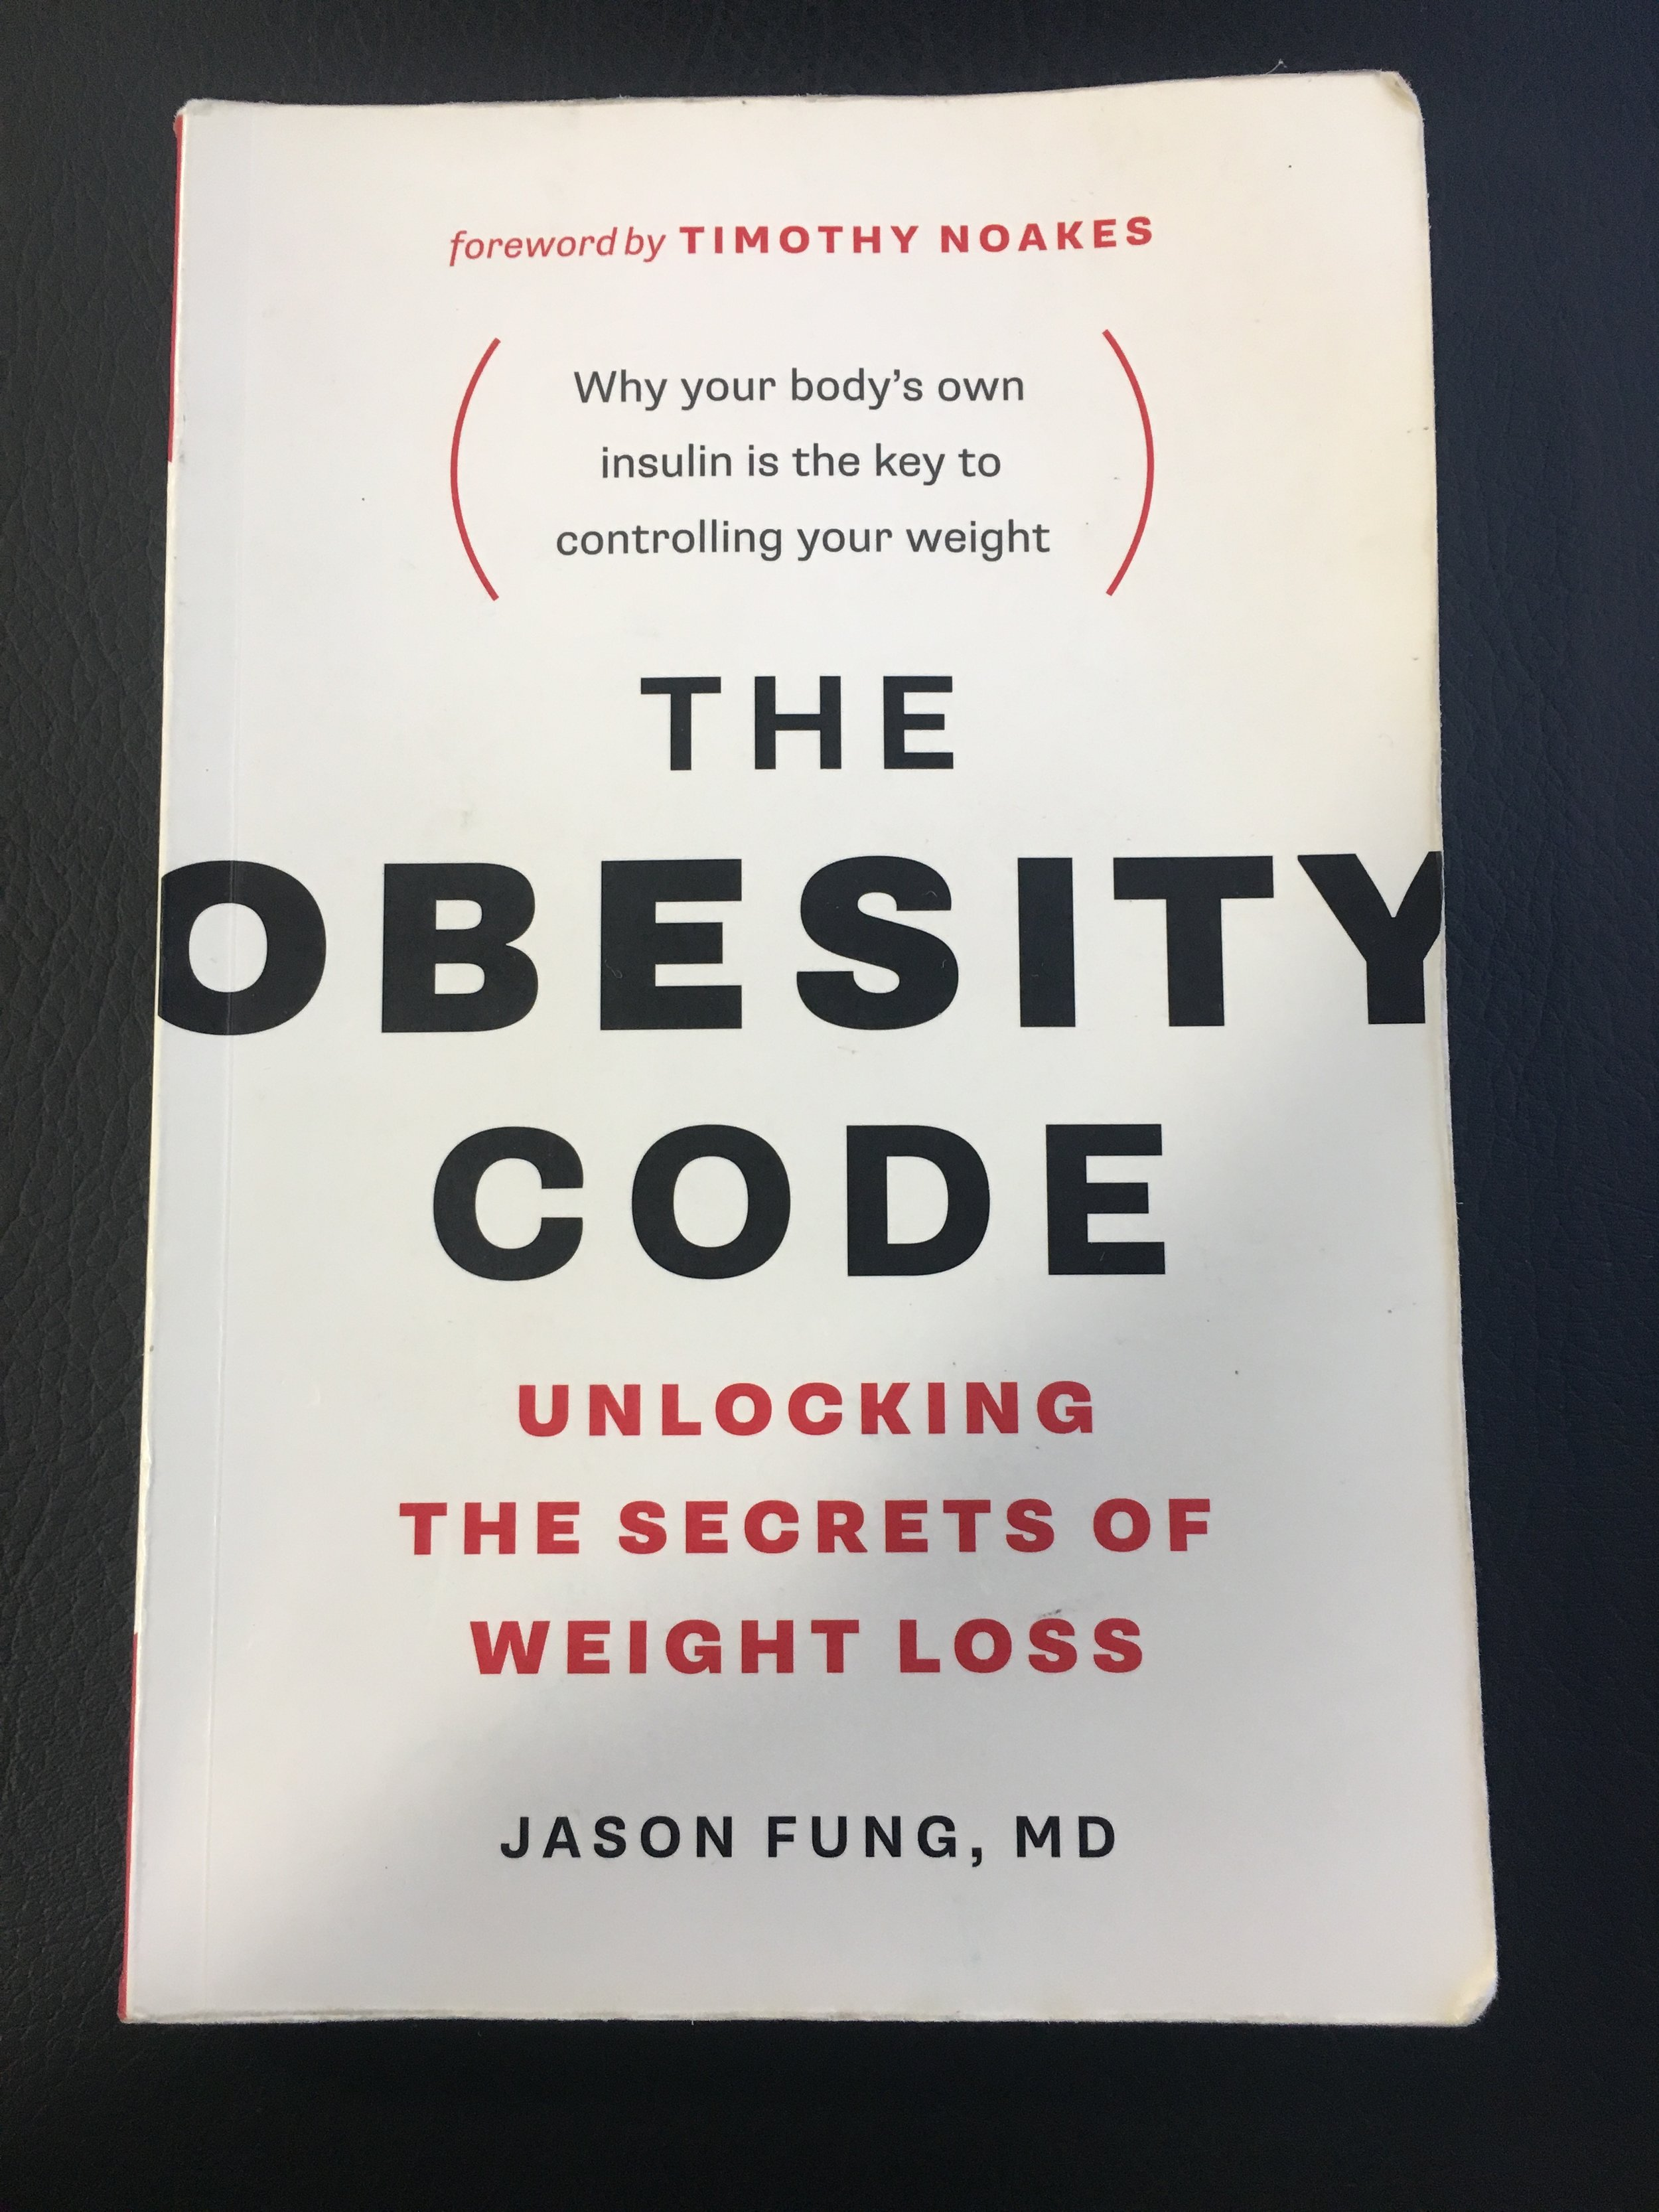 - Dr. Jason Fung, one of the world's leading experts on obesity, debunks many of the misconceptions surrounding sustainable weight loss. if you're fed up with counting calories and inconsistent progress I strongly suggest you read this book!